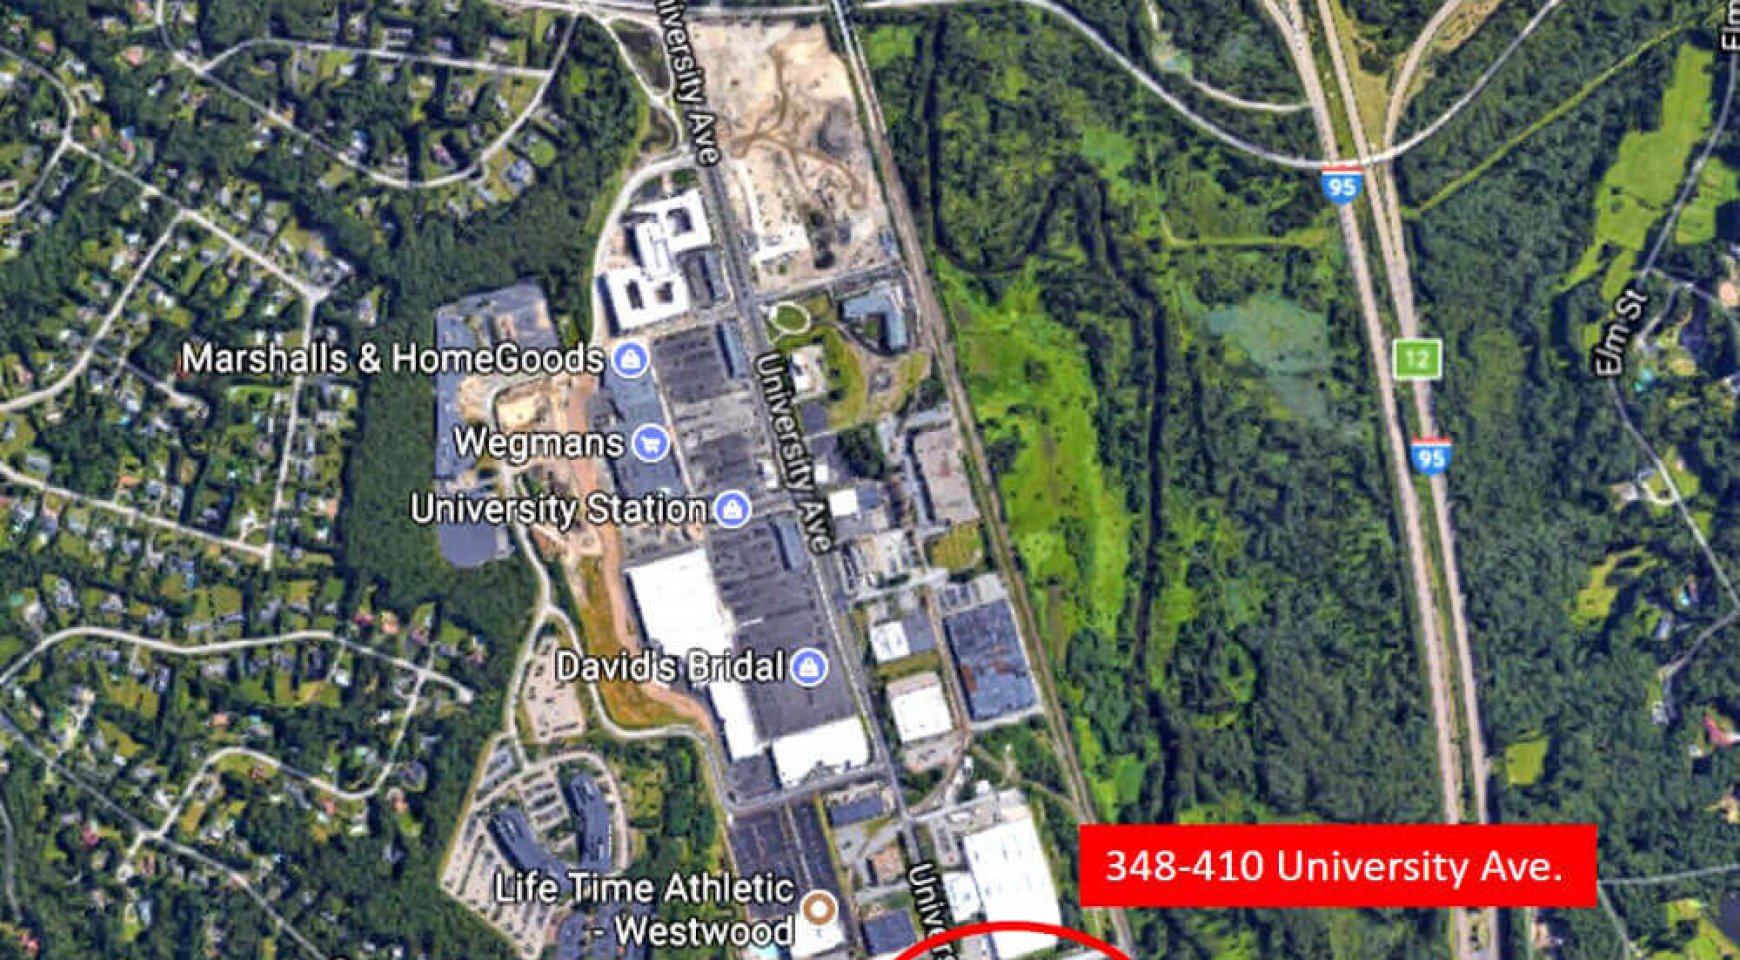 Commercial Office Space Avail. at 392-410 University Ave., Westwood, on old map of framingham ma, map of longmeadow ma, map of tewksbury ma, map of canton ma, map of chicopee ma, map of new marlborough ma, map of west falmouth ma, map of route 128 ma, map of mendham ma, map of dorchester ma, map of turners falls ma, map of foxwood ma, map of south dartmouth ma, map of ocean city ma, map of westfield ma, map of methuen ma, map of west harwich ma, map of roxbury ma, map of silver lake ma, map of westport ma,